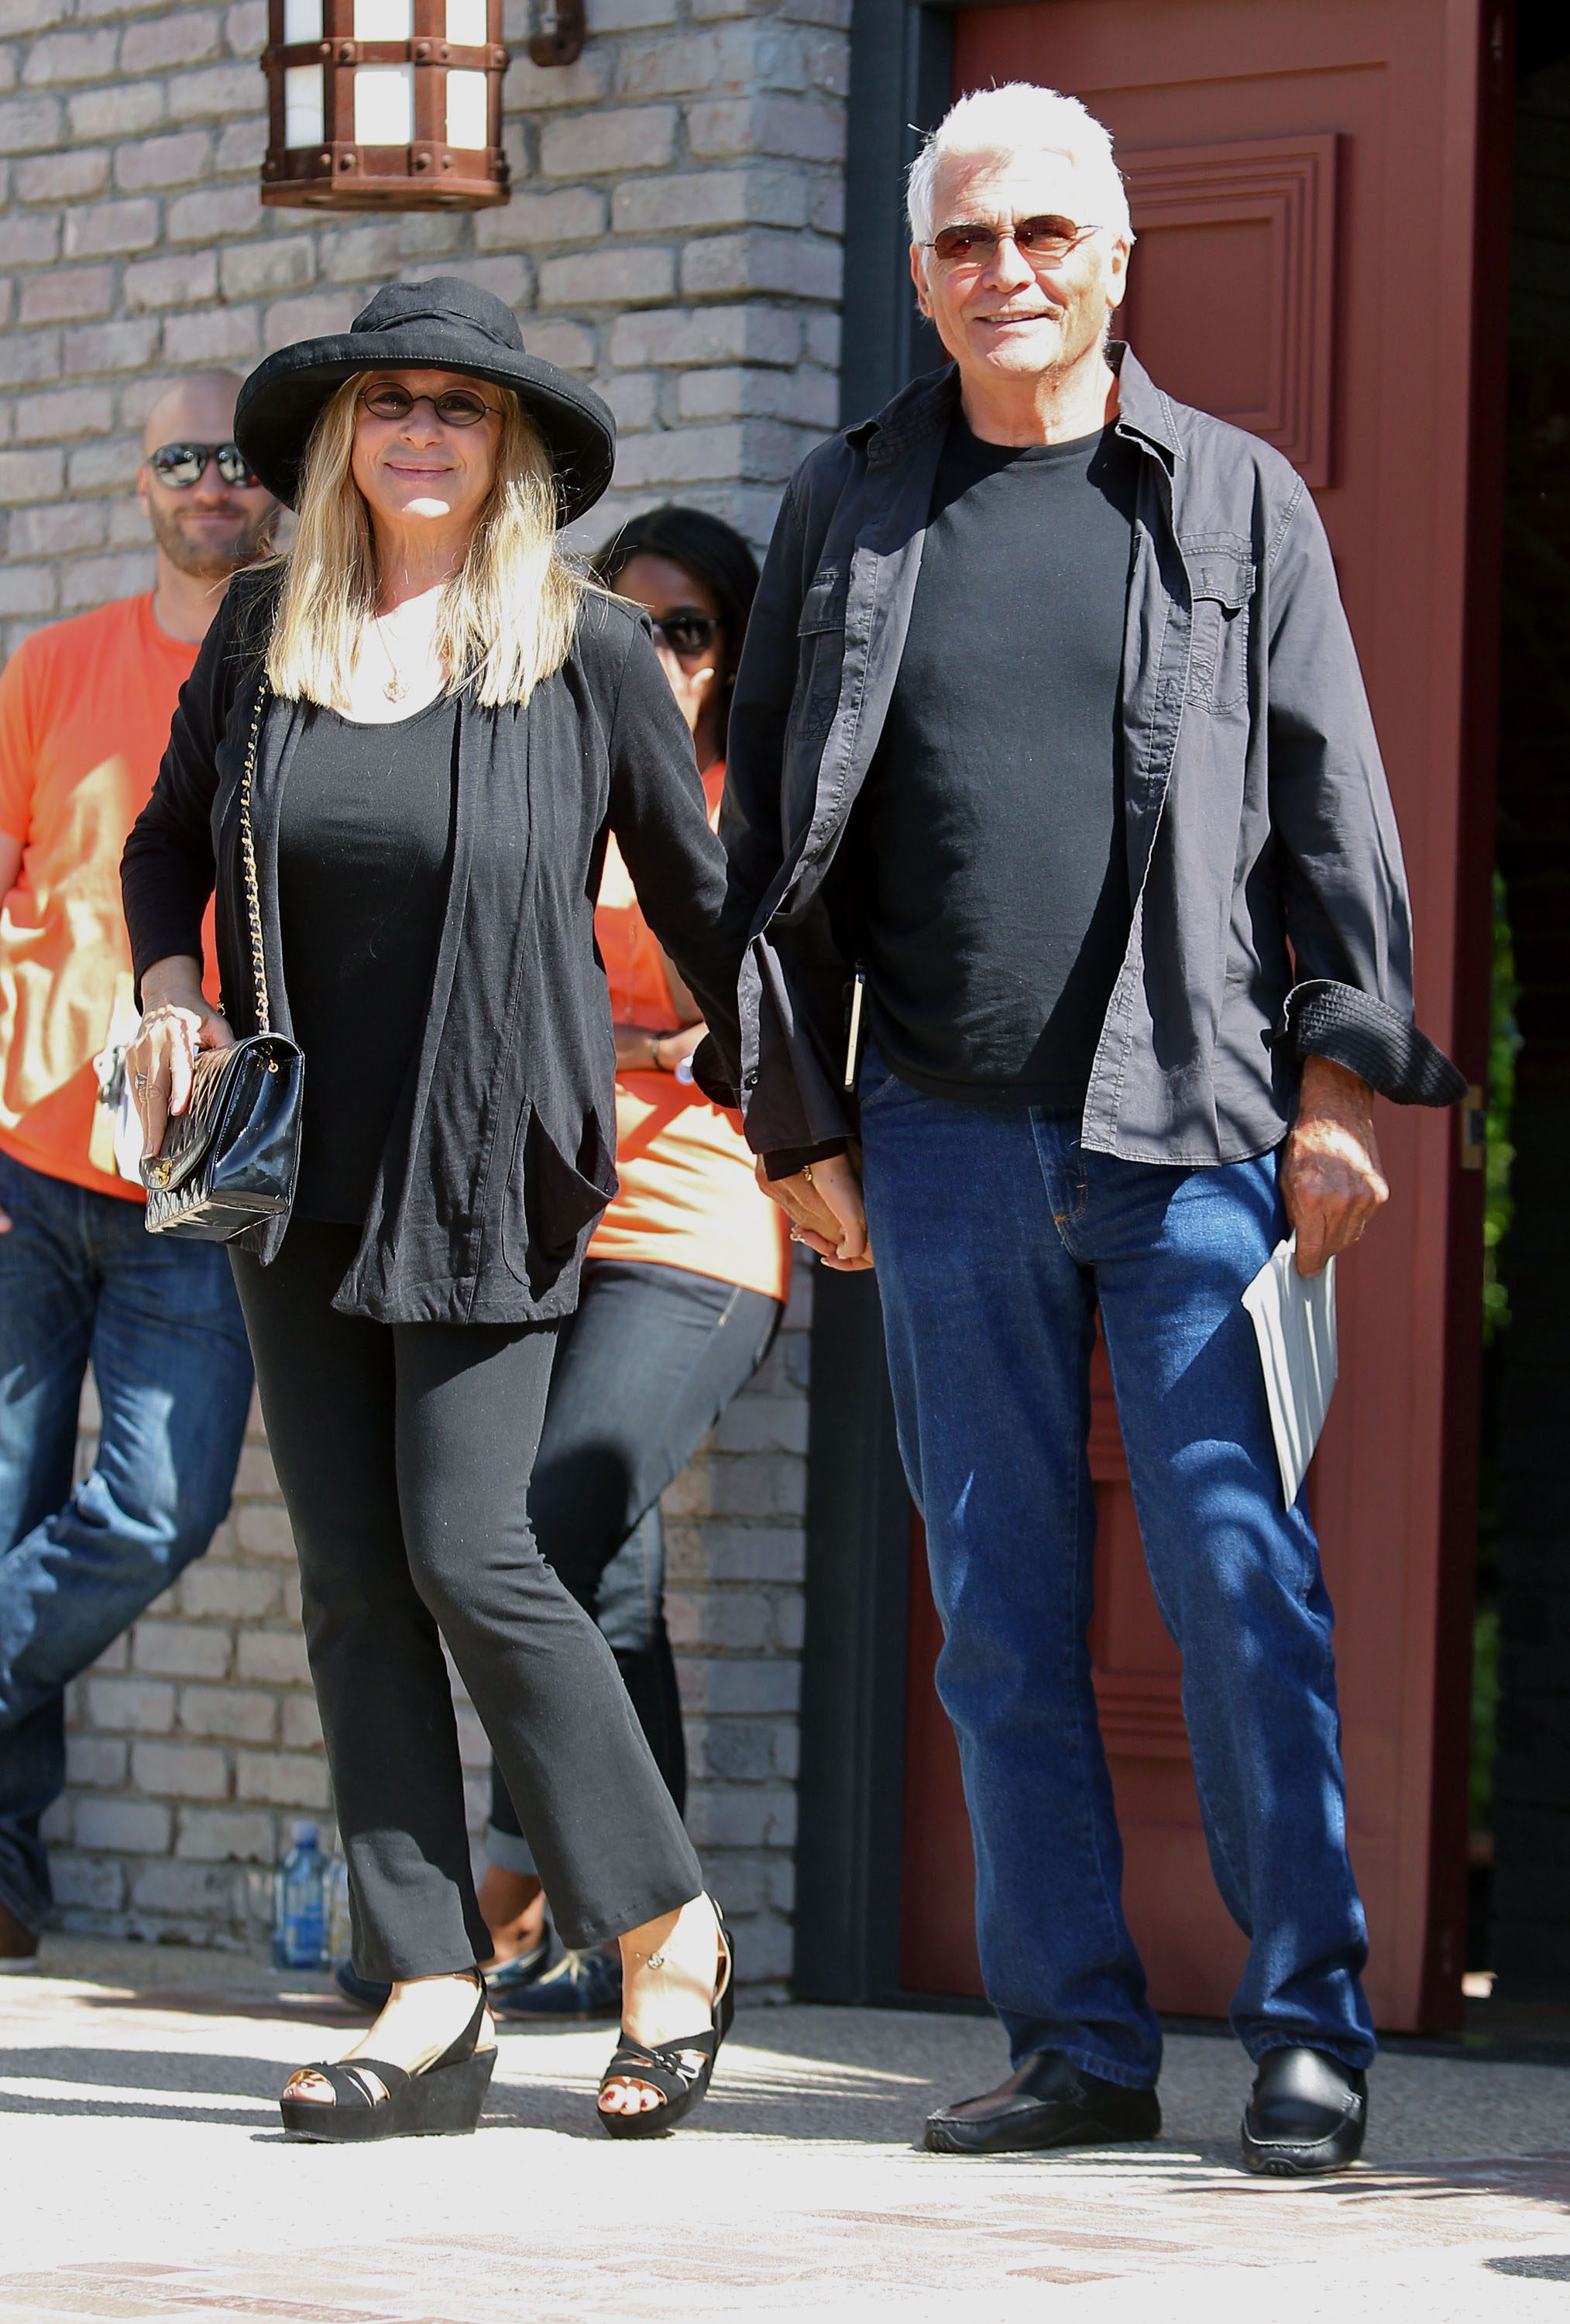 Barbra Streisand and James Brolin were attendees at a Memorial Day party